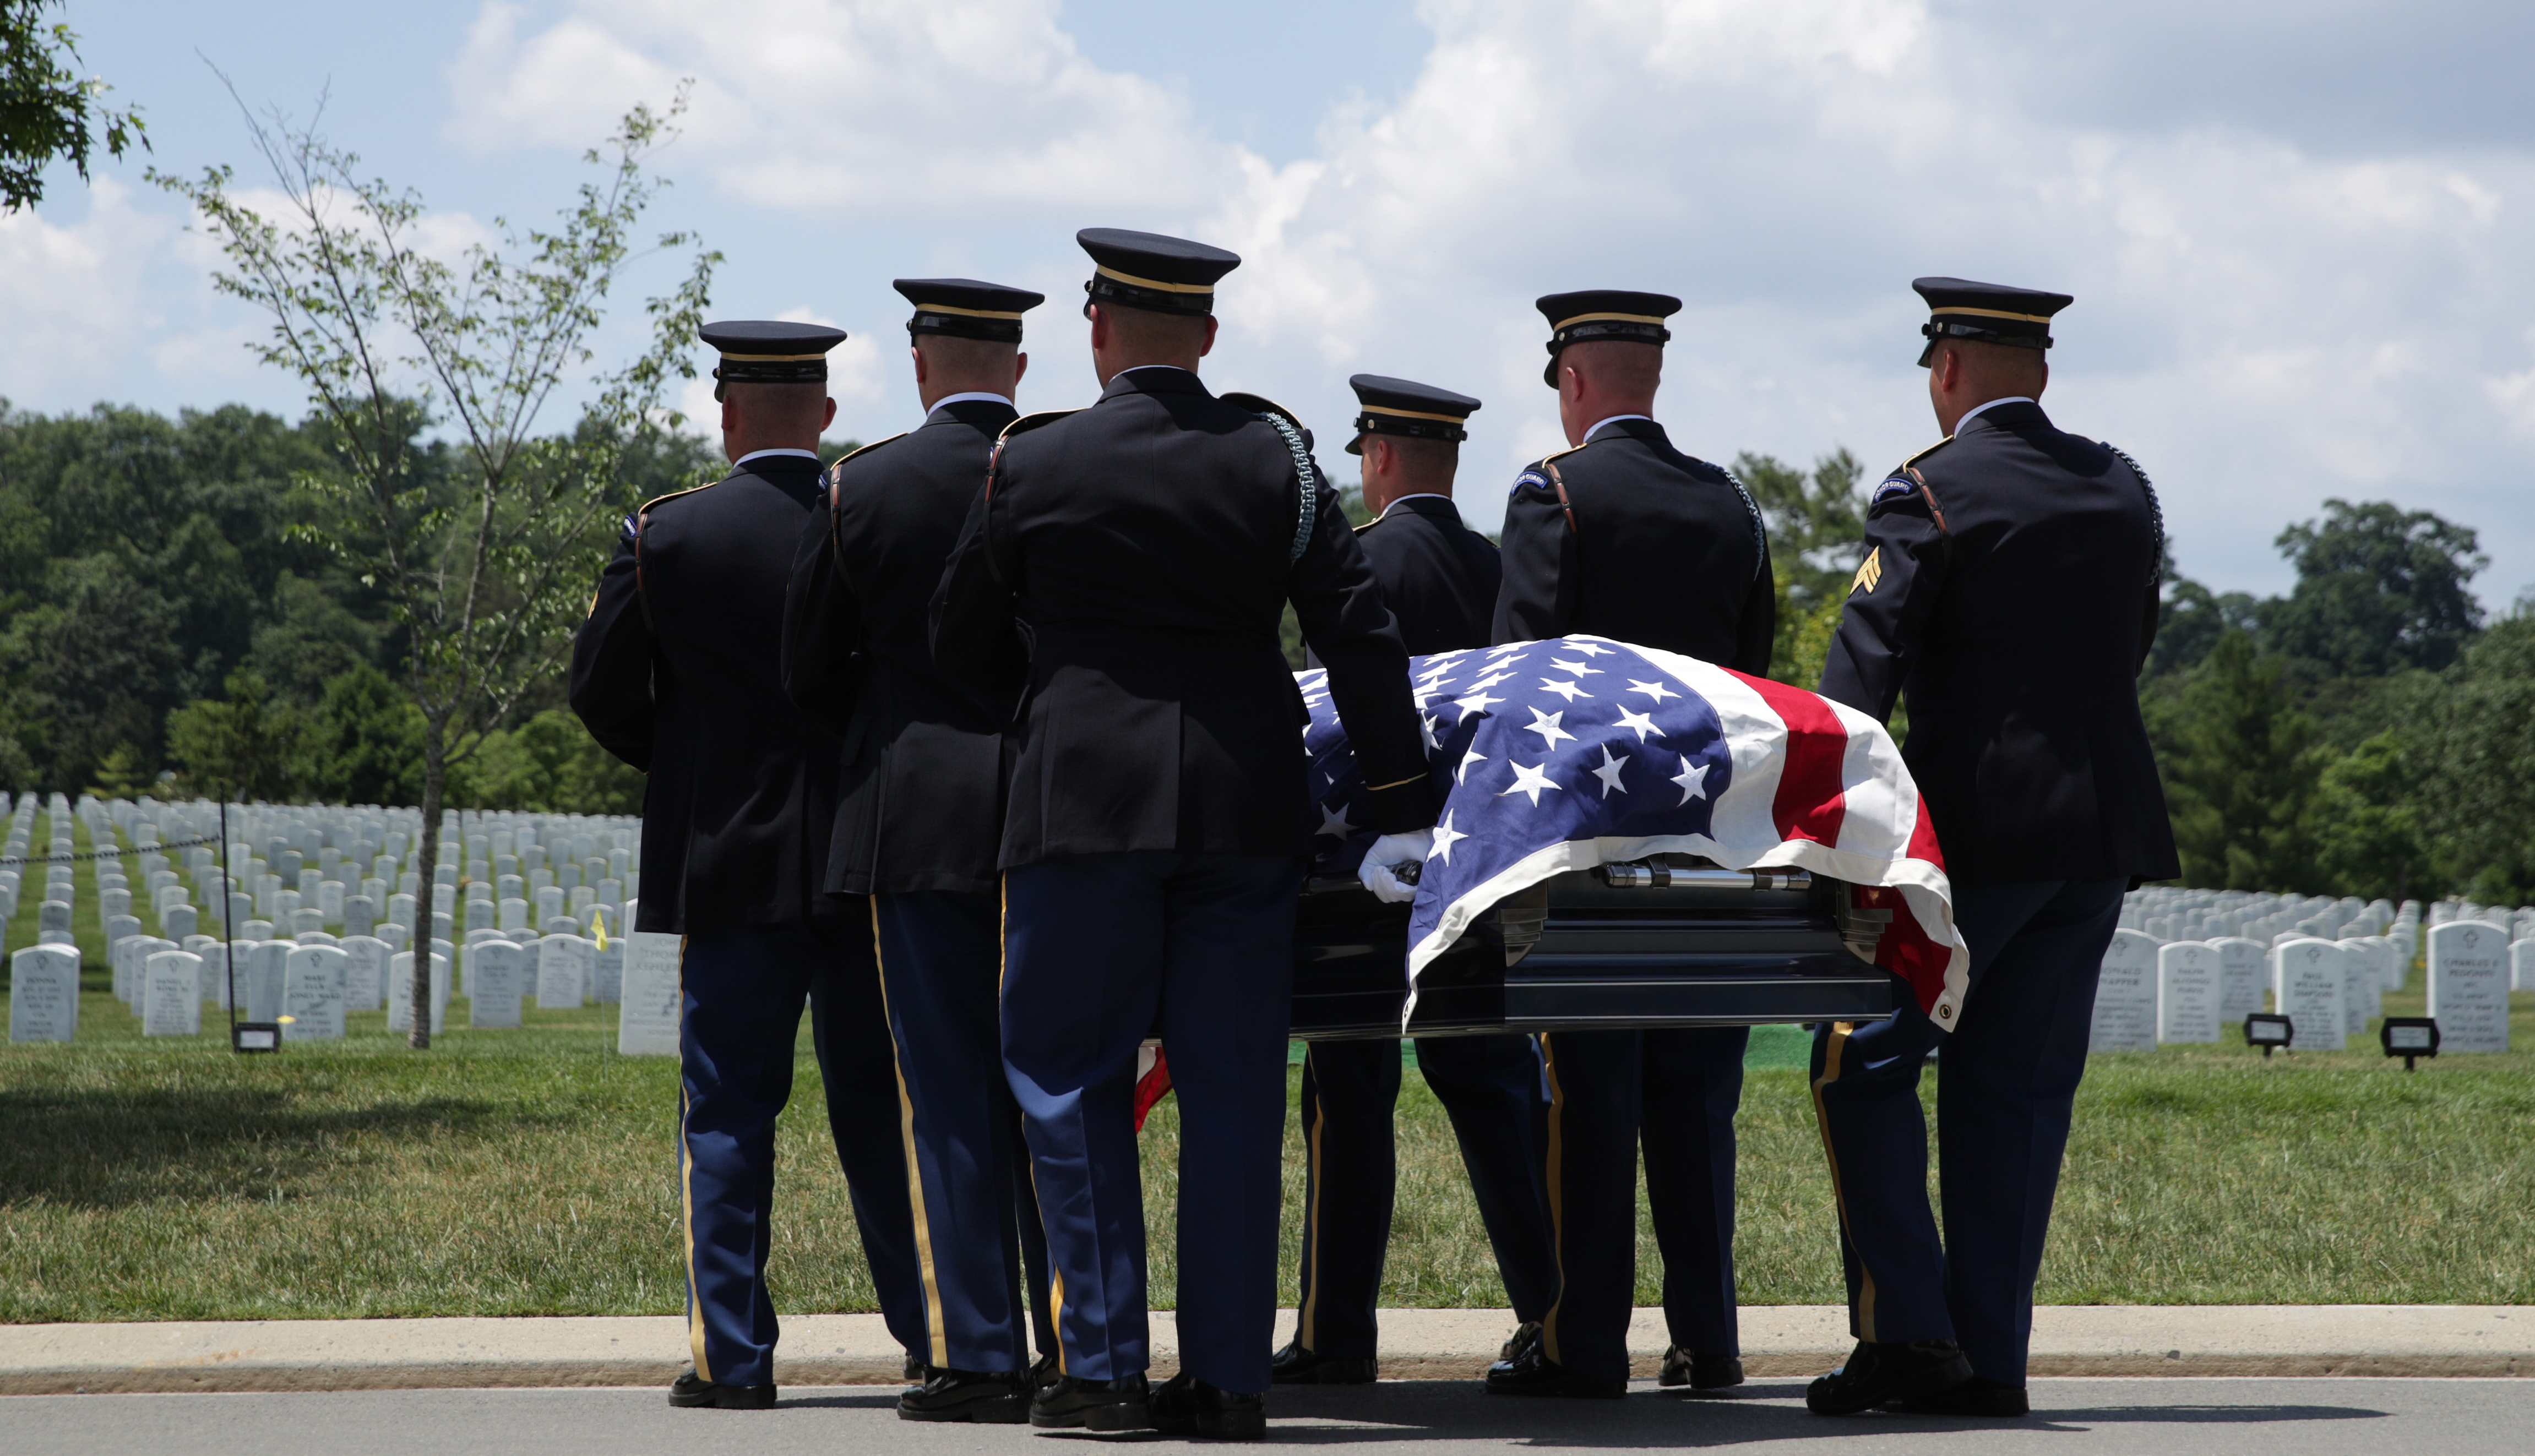 """Members of the U.S. Army's 3rd Infantry Regiment """"The Old Guard"""" carry the flag-draped casket of World War II Army veteran Carl Mann to his final resting place during his funeral on the 75th anniversary of the D-Day invasion June 6, 2019 at Arlington Nati"""